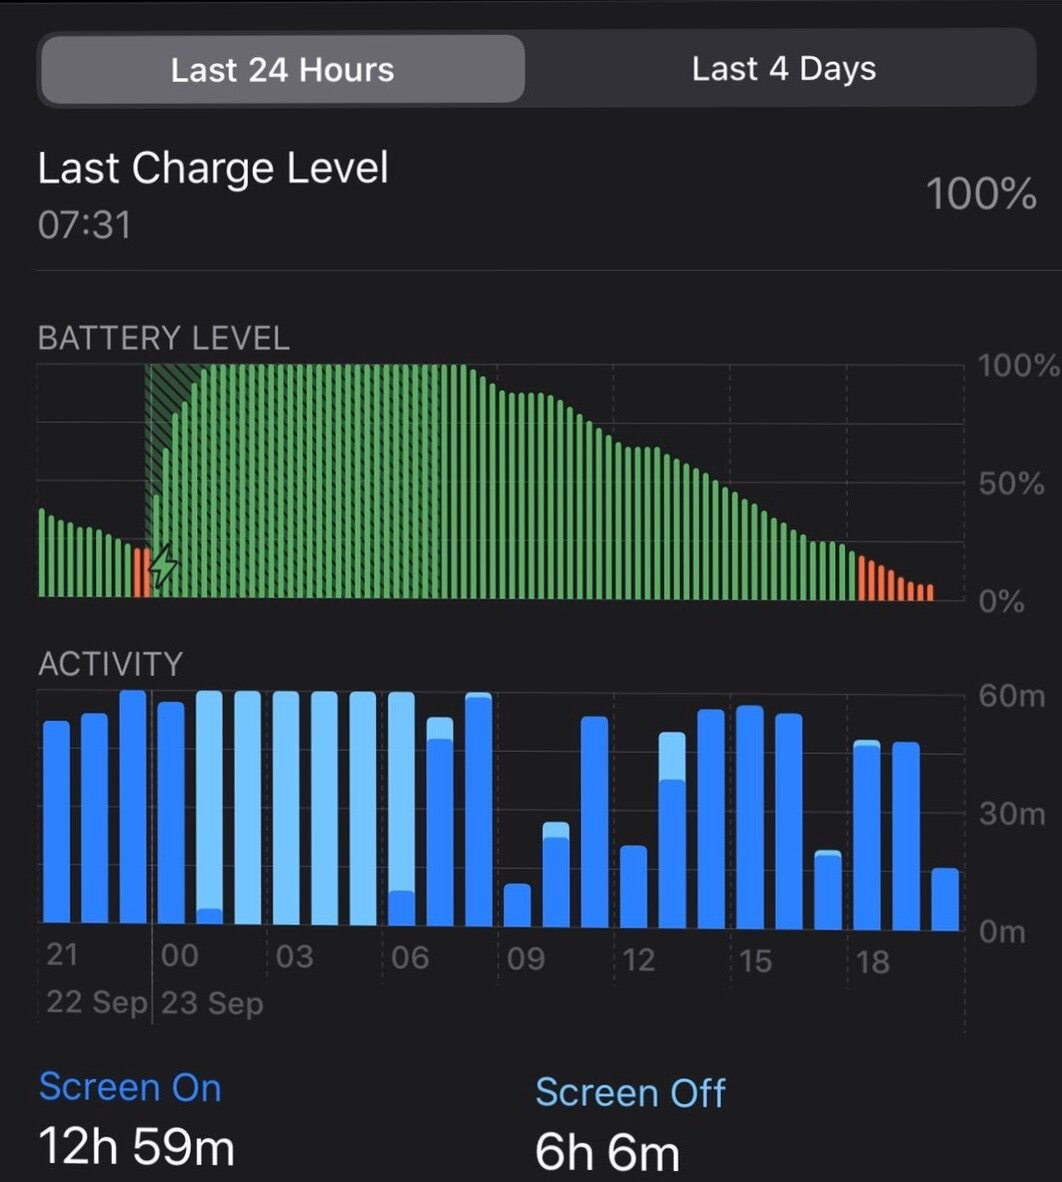 Off charge 7:31am with 100% battery. Depleted 9pm with 0%.